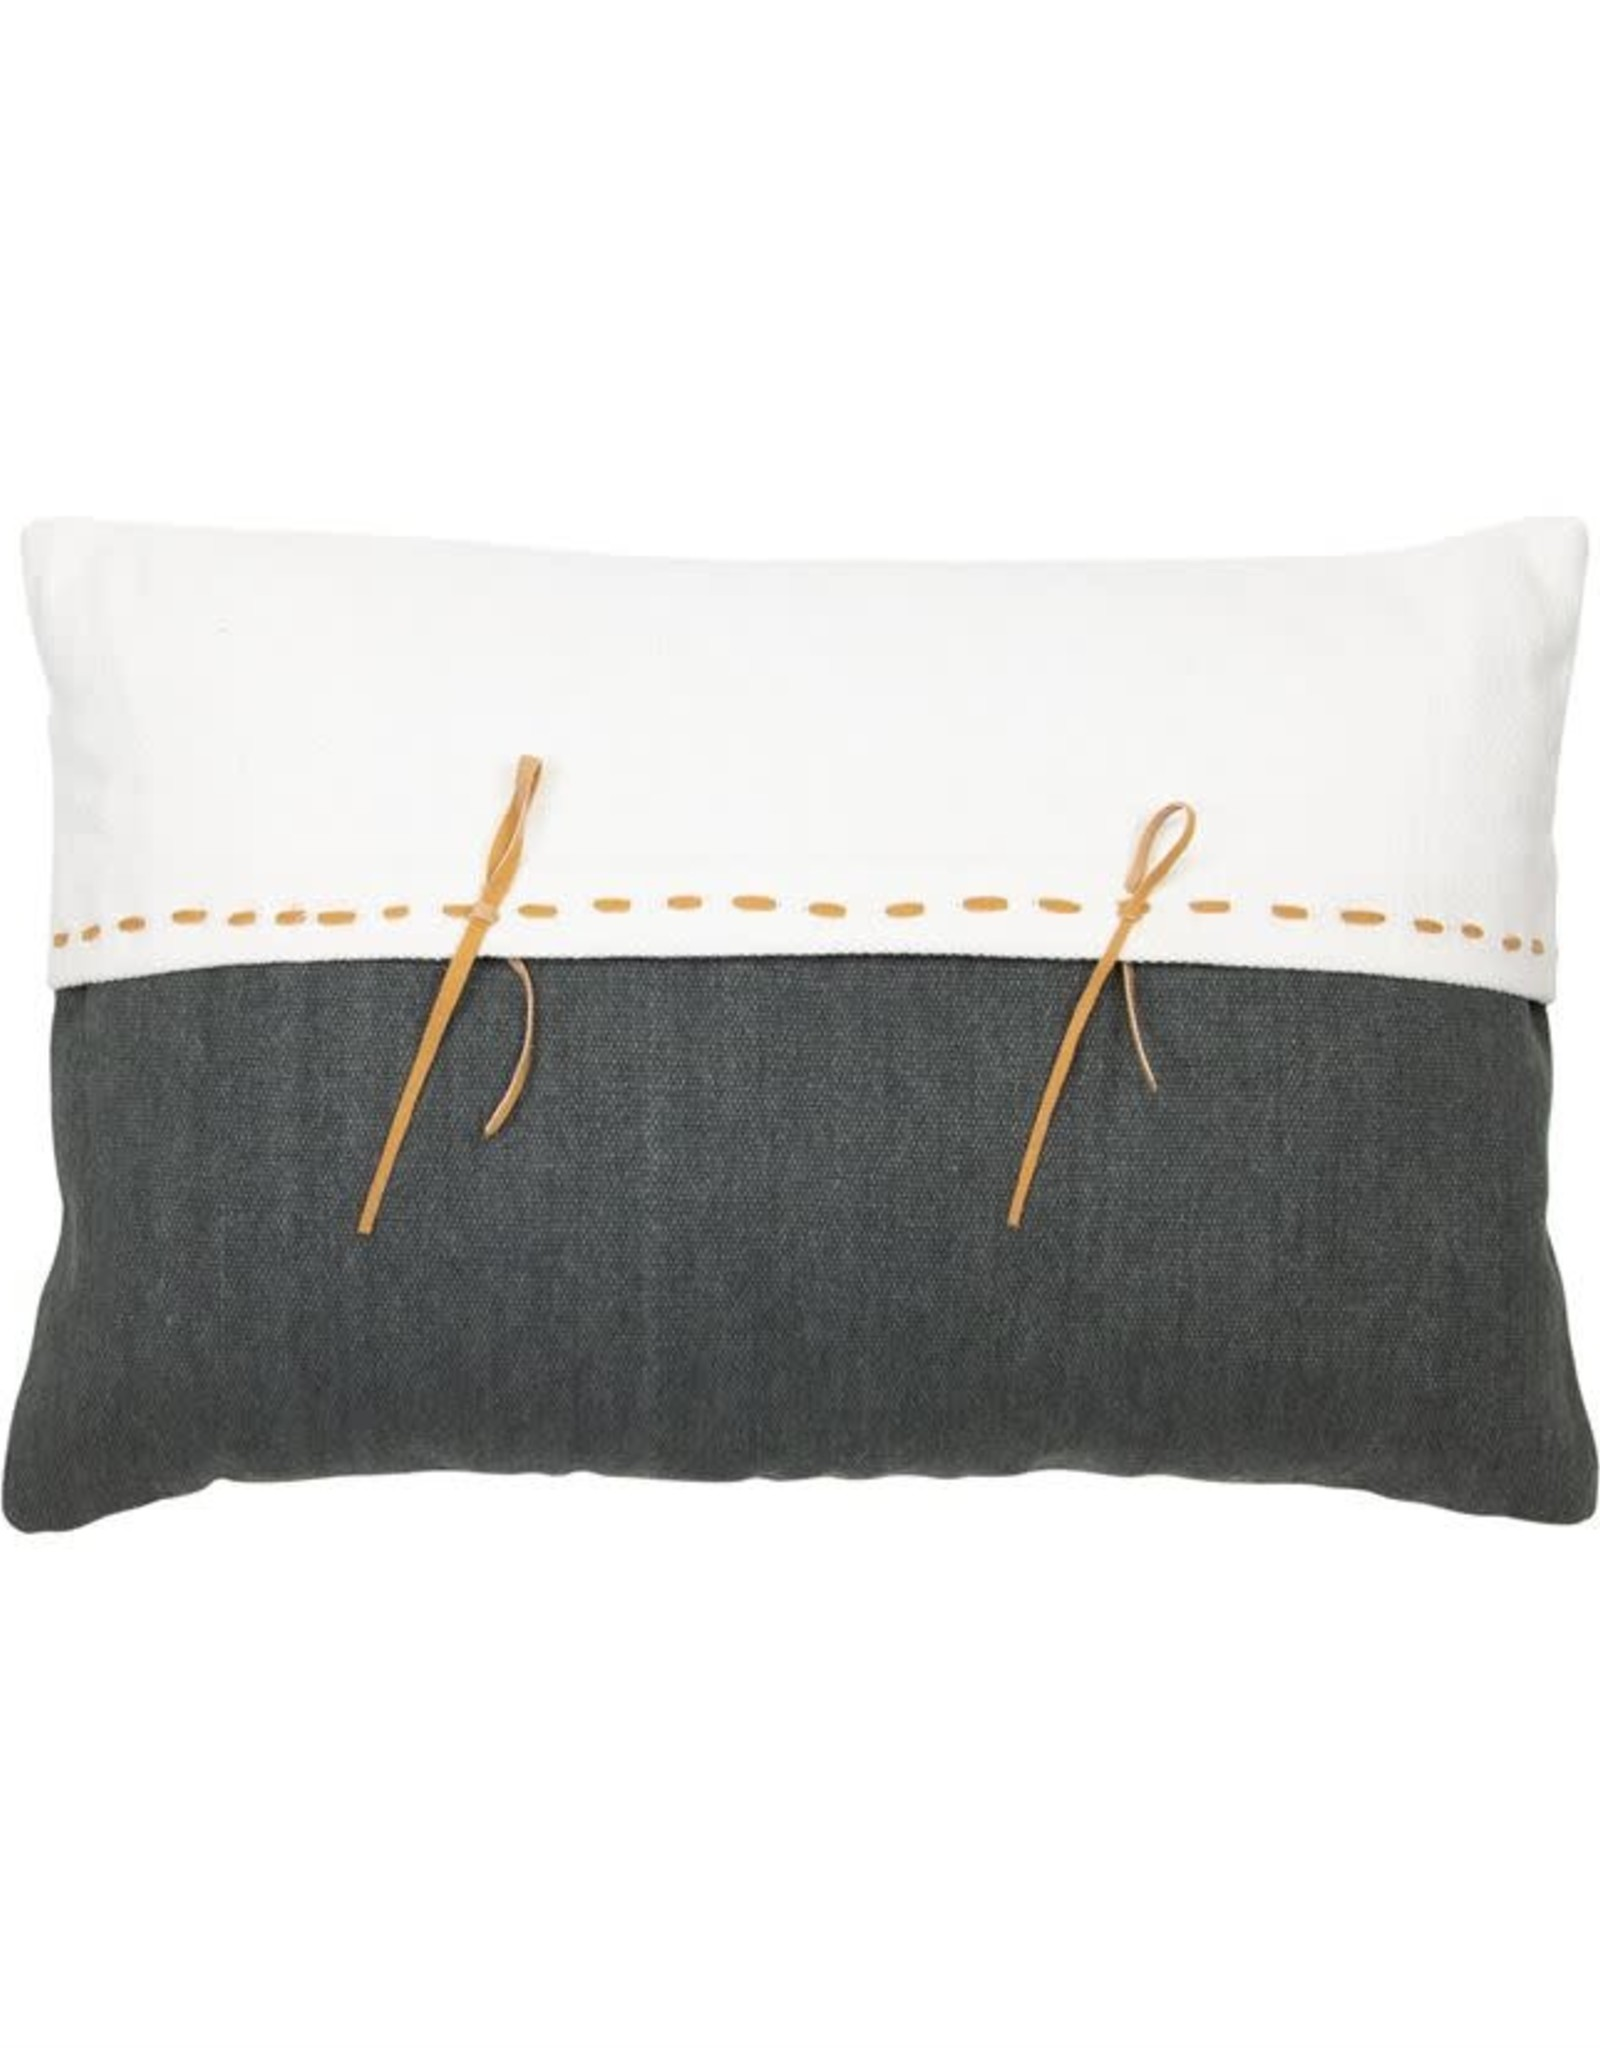 Charcoal & White Pillows with Leather Accent